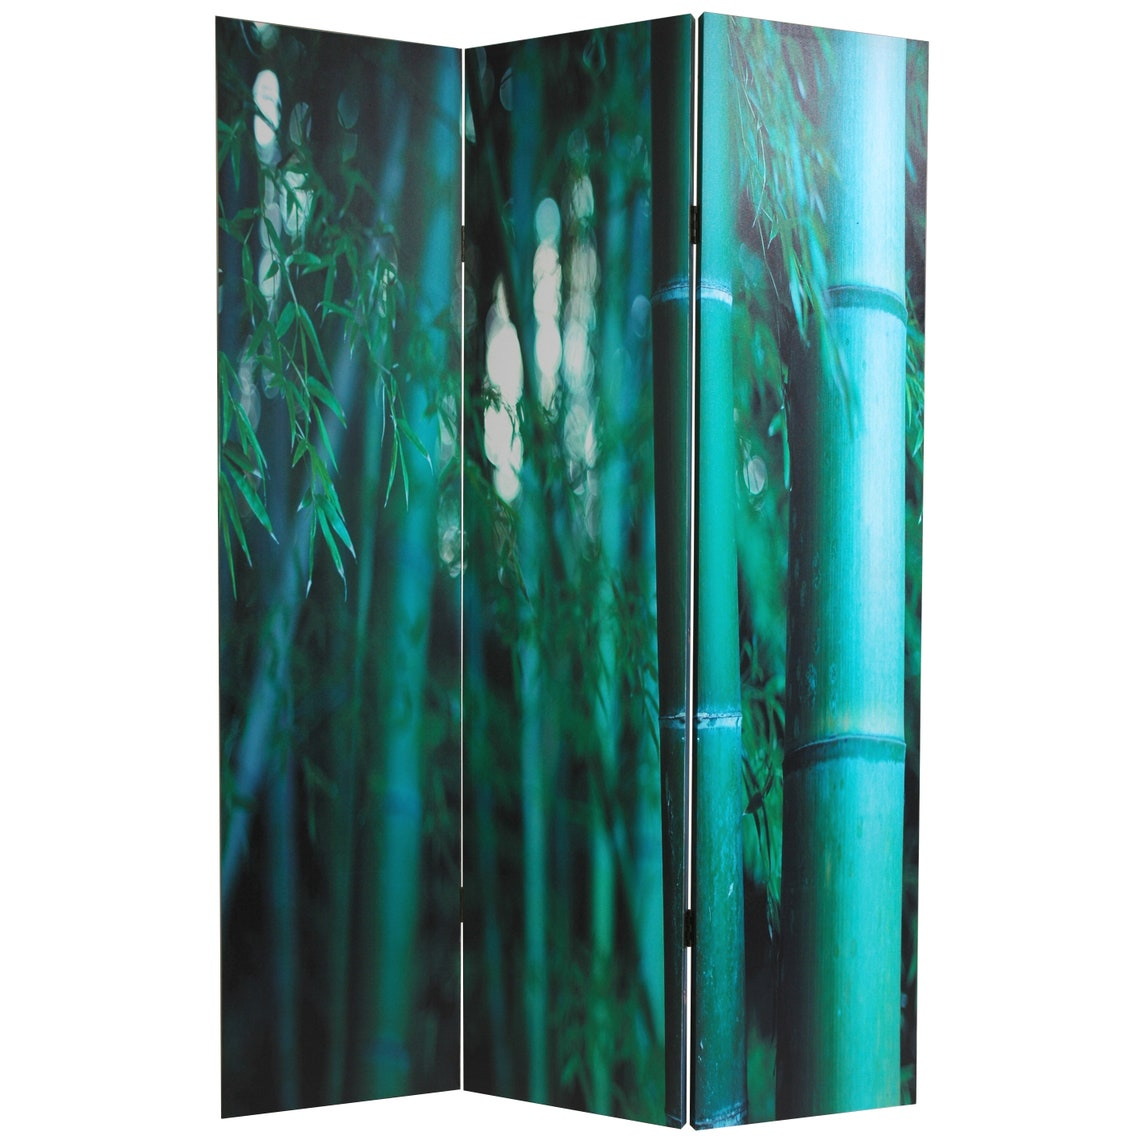 6 ft. Tall Double Sided Bamboo Tree Canvas Room Divider